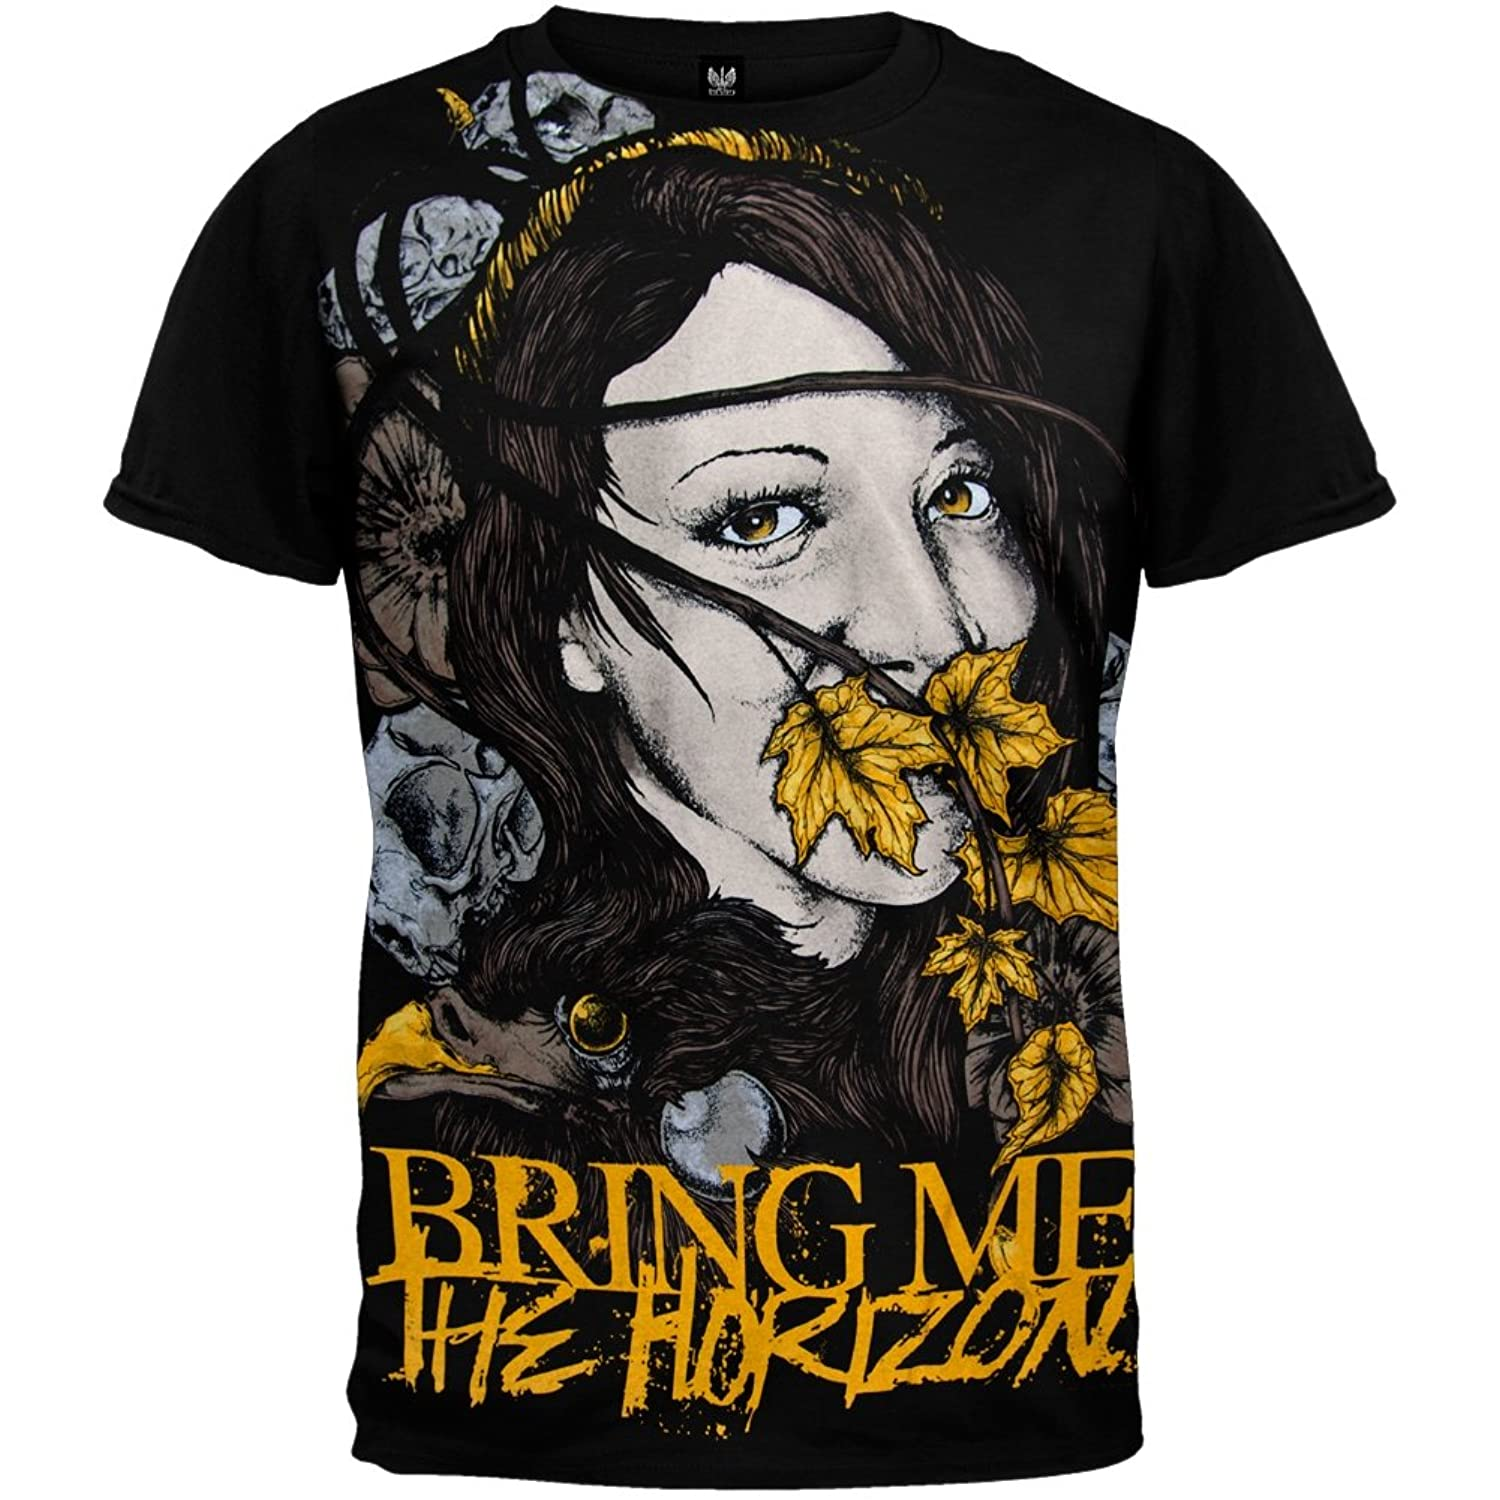 Bring Me The Horizon Shirt Hot Topic Bring Me The Horizon - Lady Of